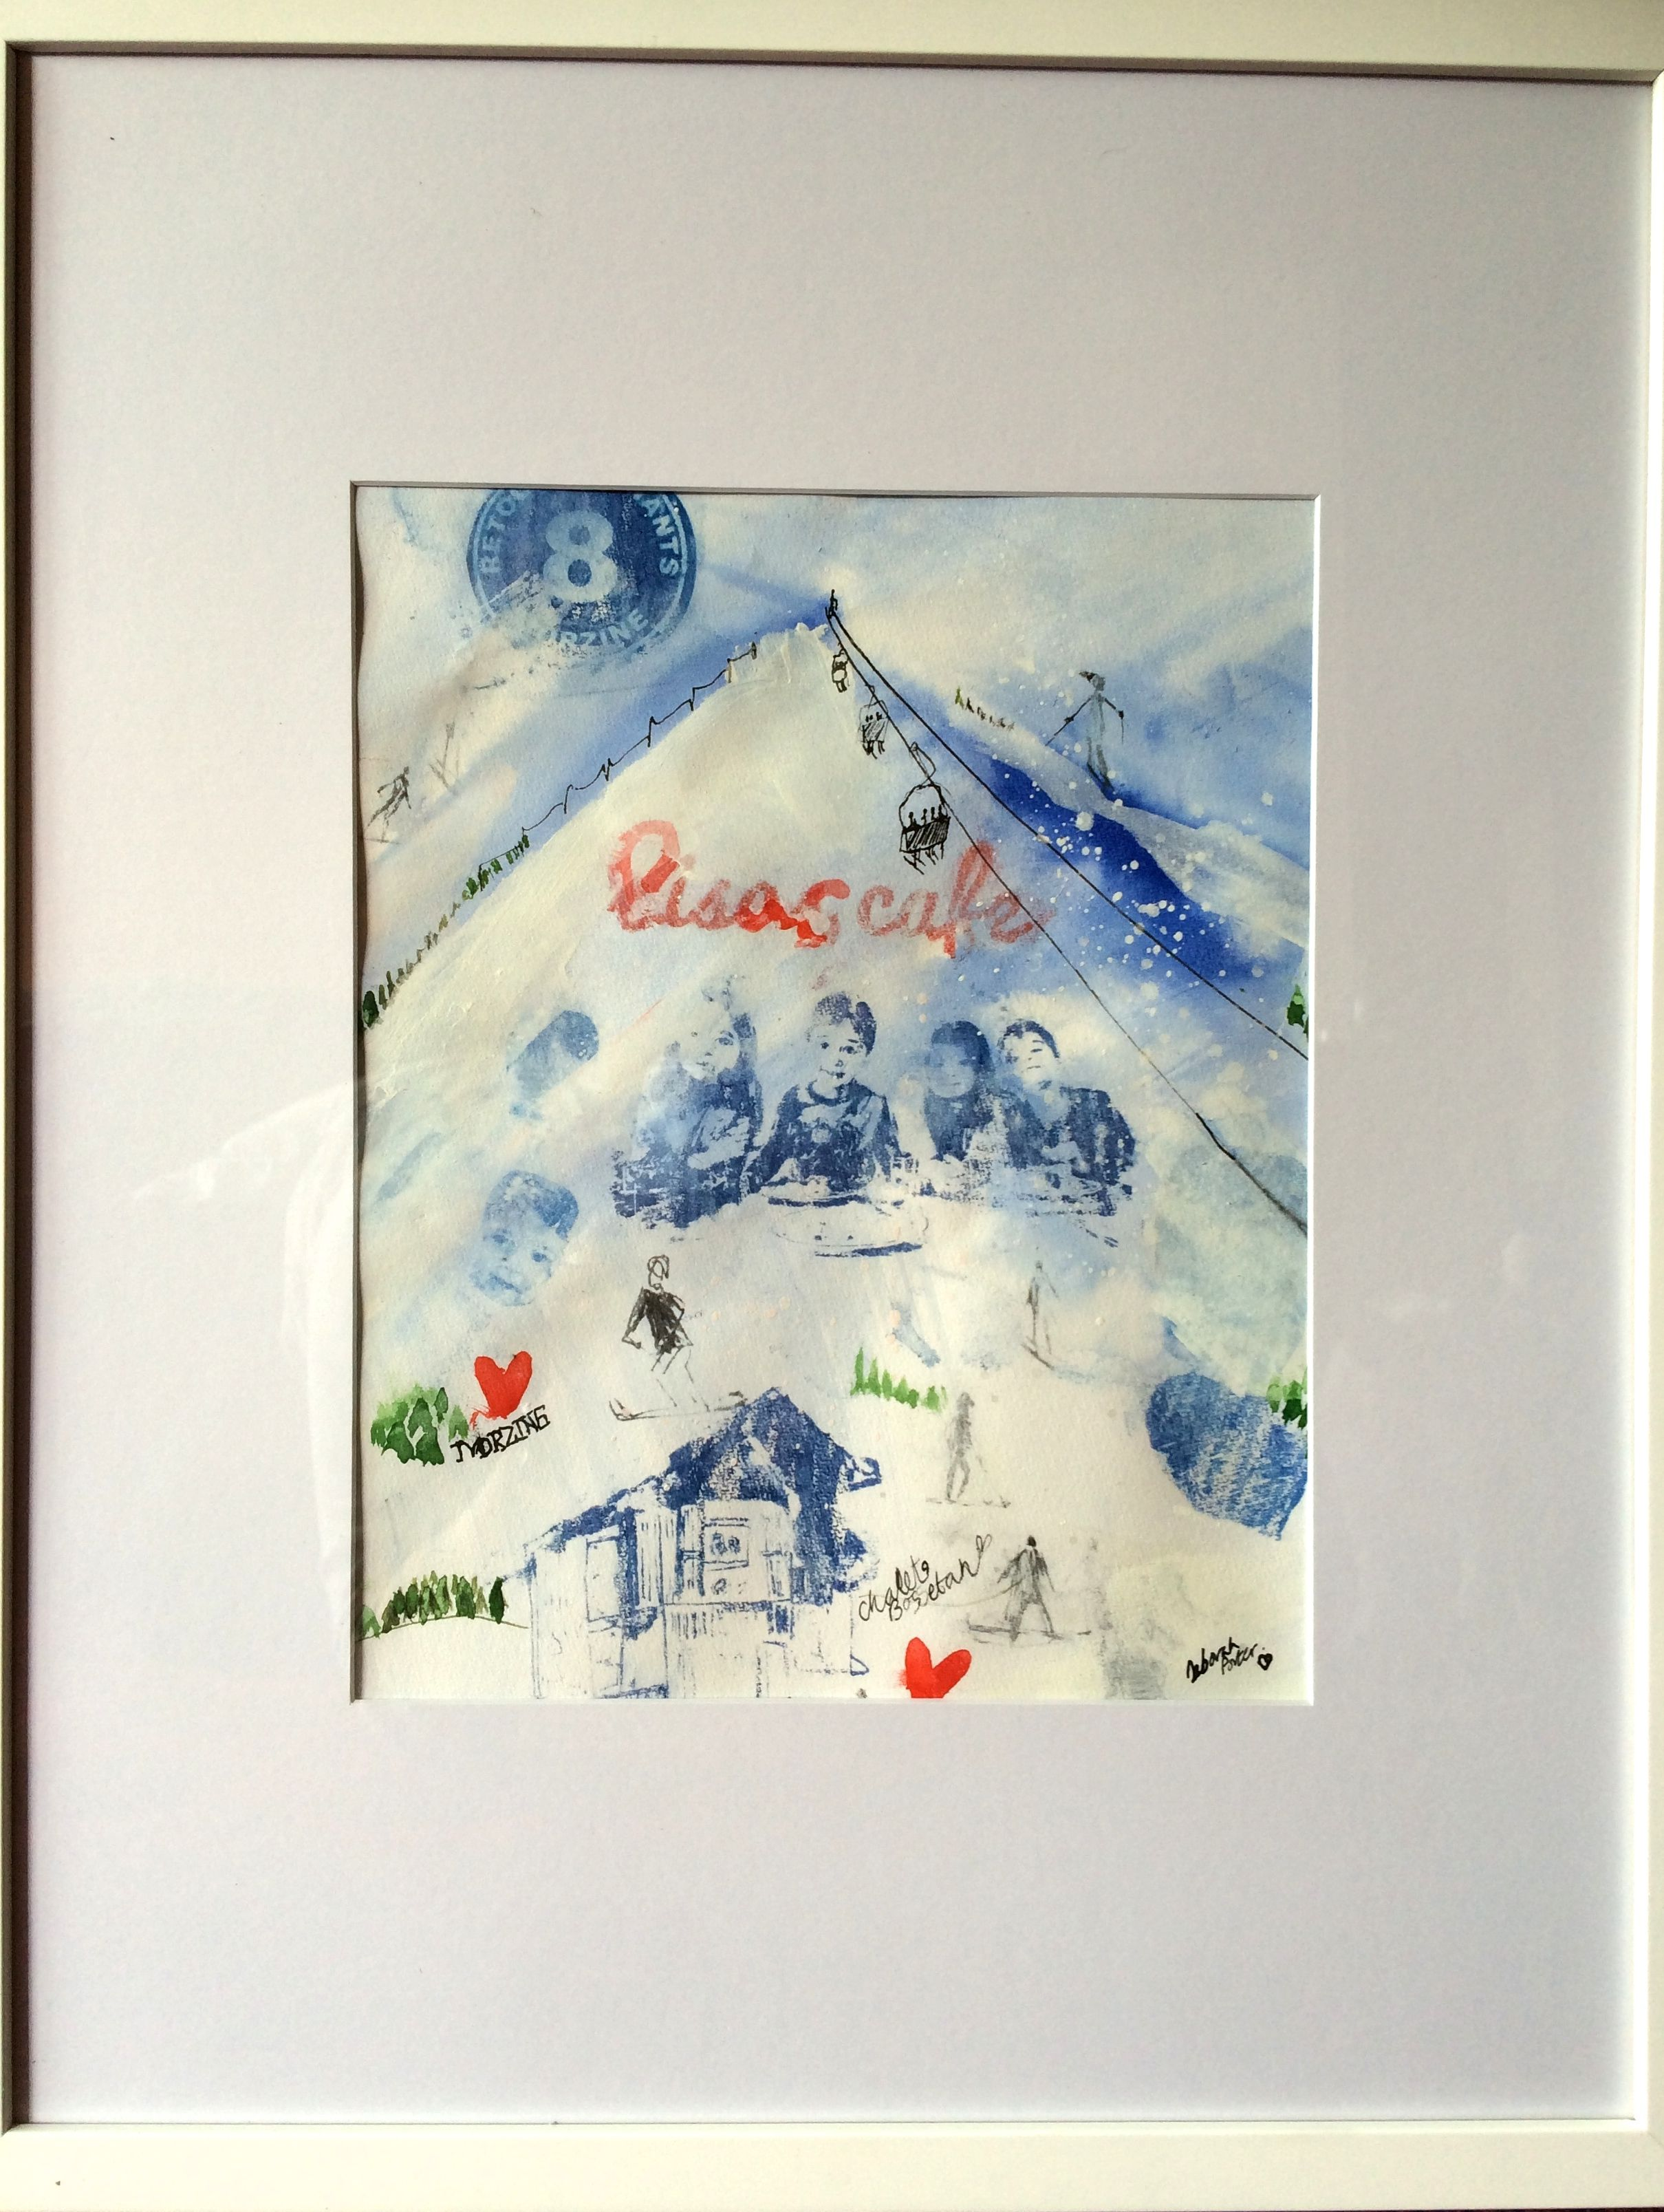 A commission from a family who like to ski in Morzine.